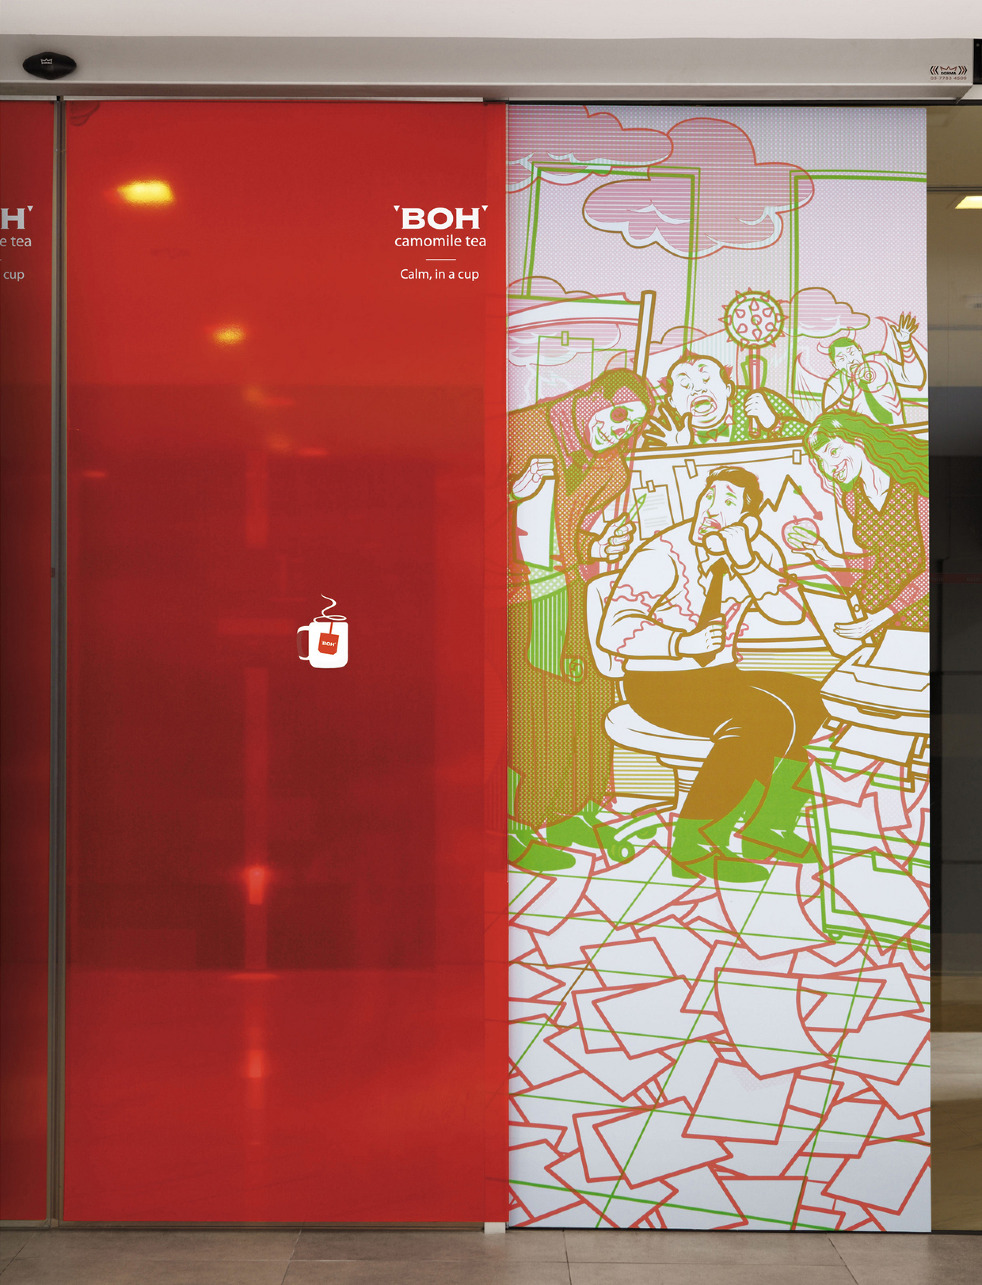 NOTE - One glass sliding door has a coloured image of a harried office worker. When the other door with a red transparent poster panel (featuring a cup of & Boh / Sliding Doors - Neil Leslie